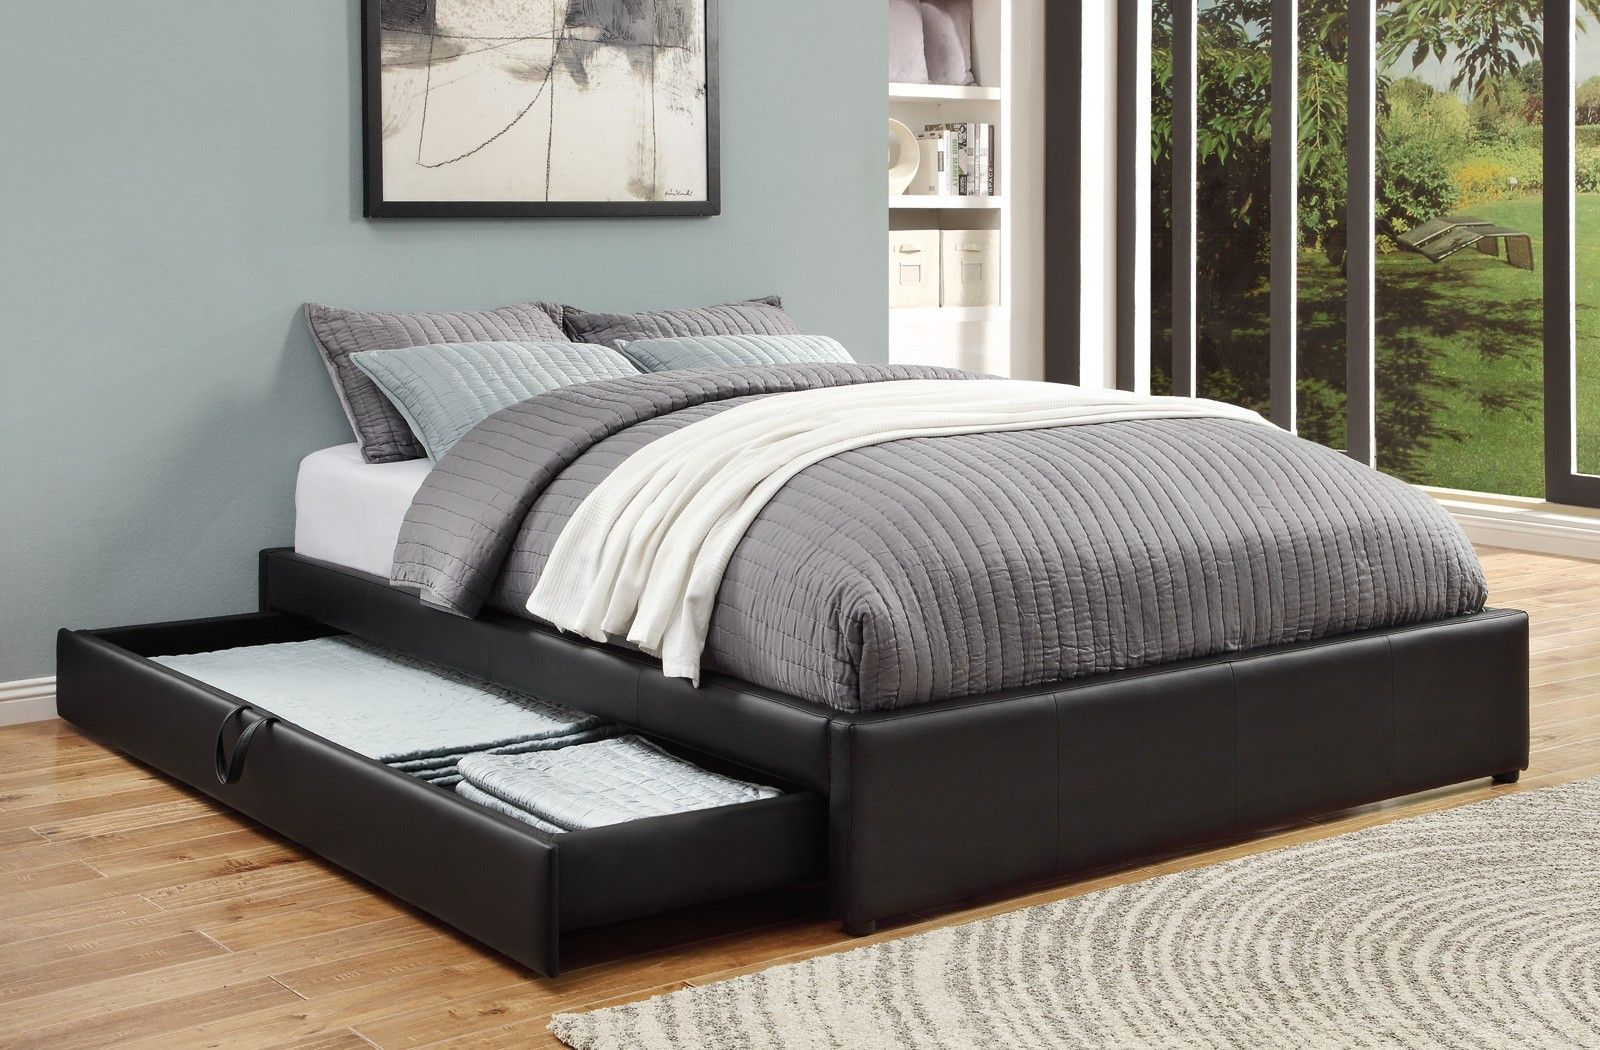 Awesome Upholstered Queen Bed With Storage Underbed Dengan Gambar